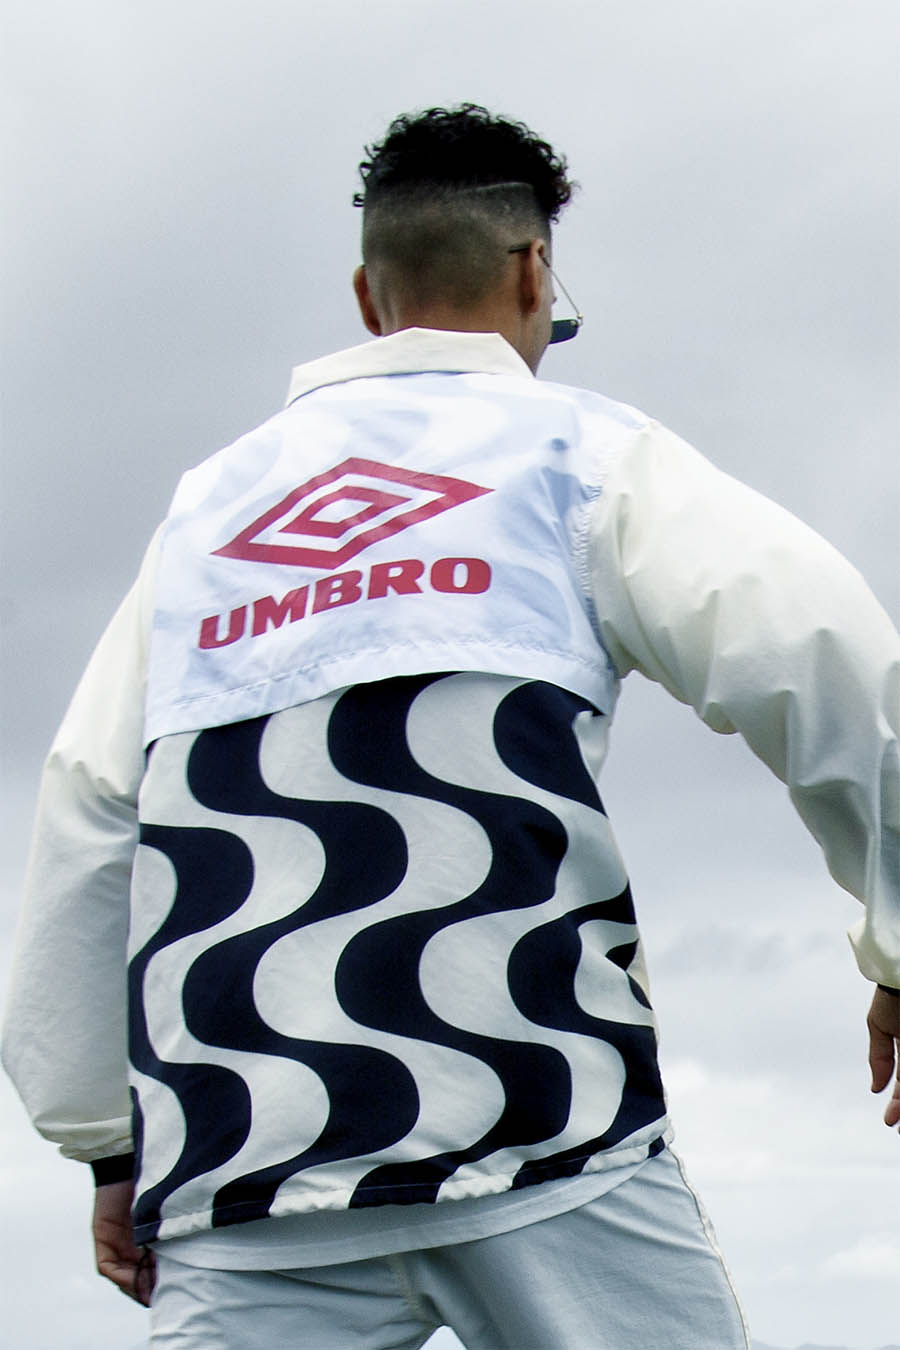 Kinfolk / Umbro